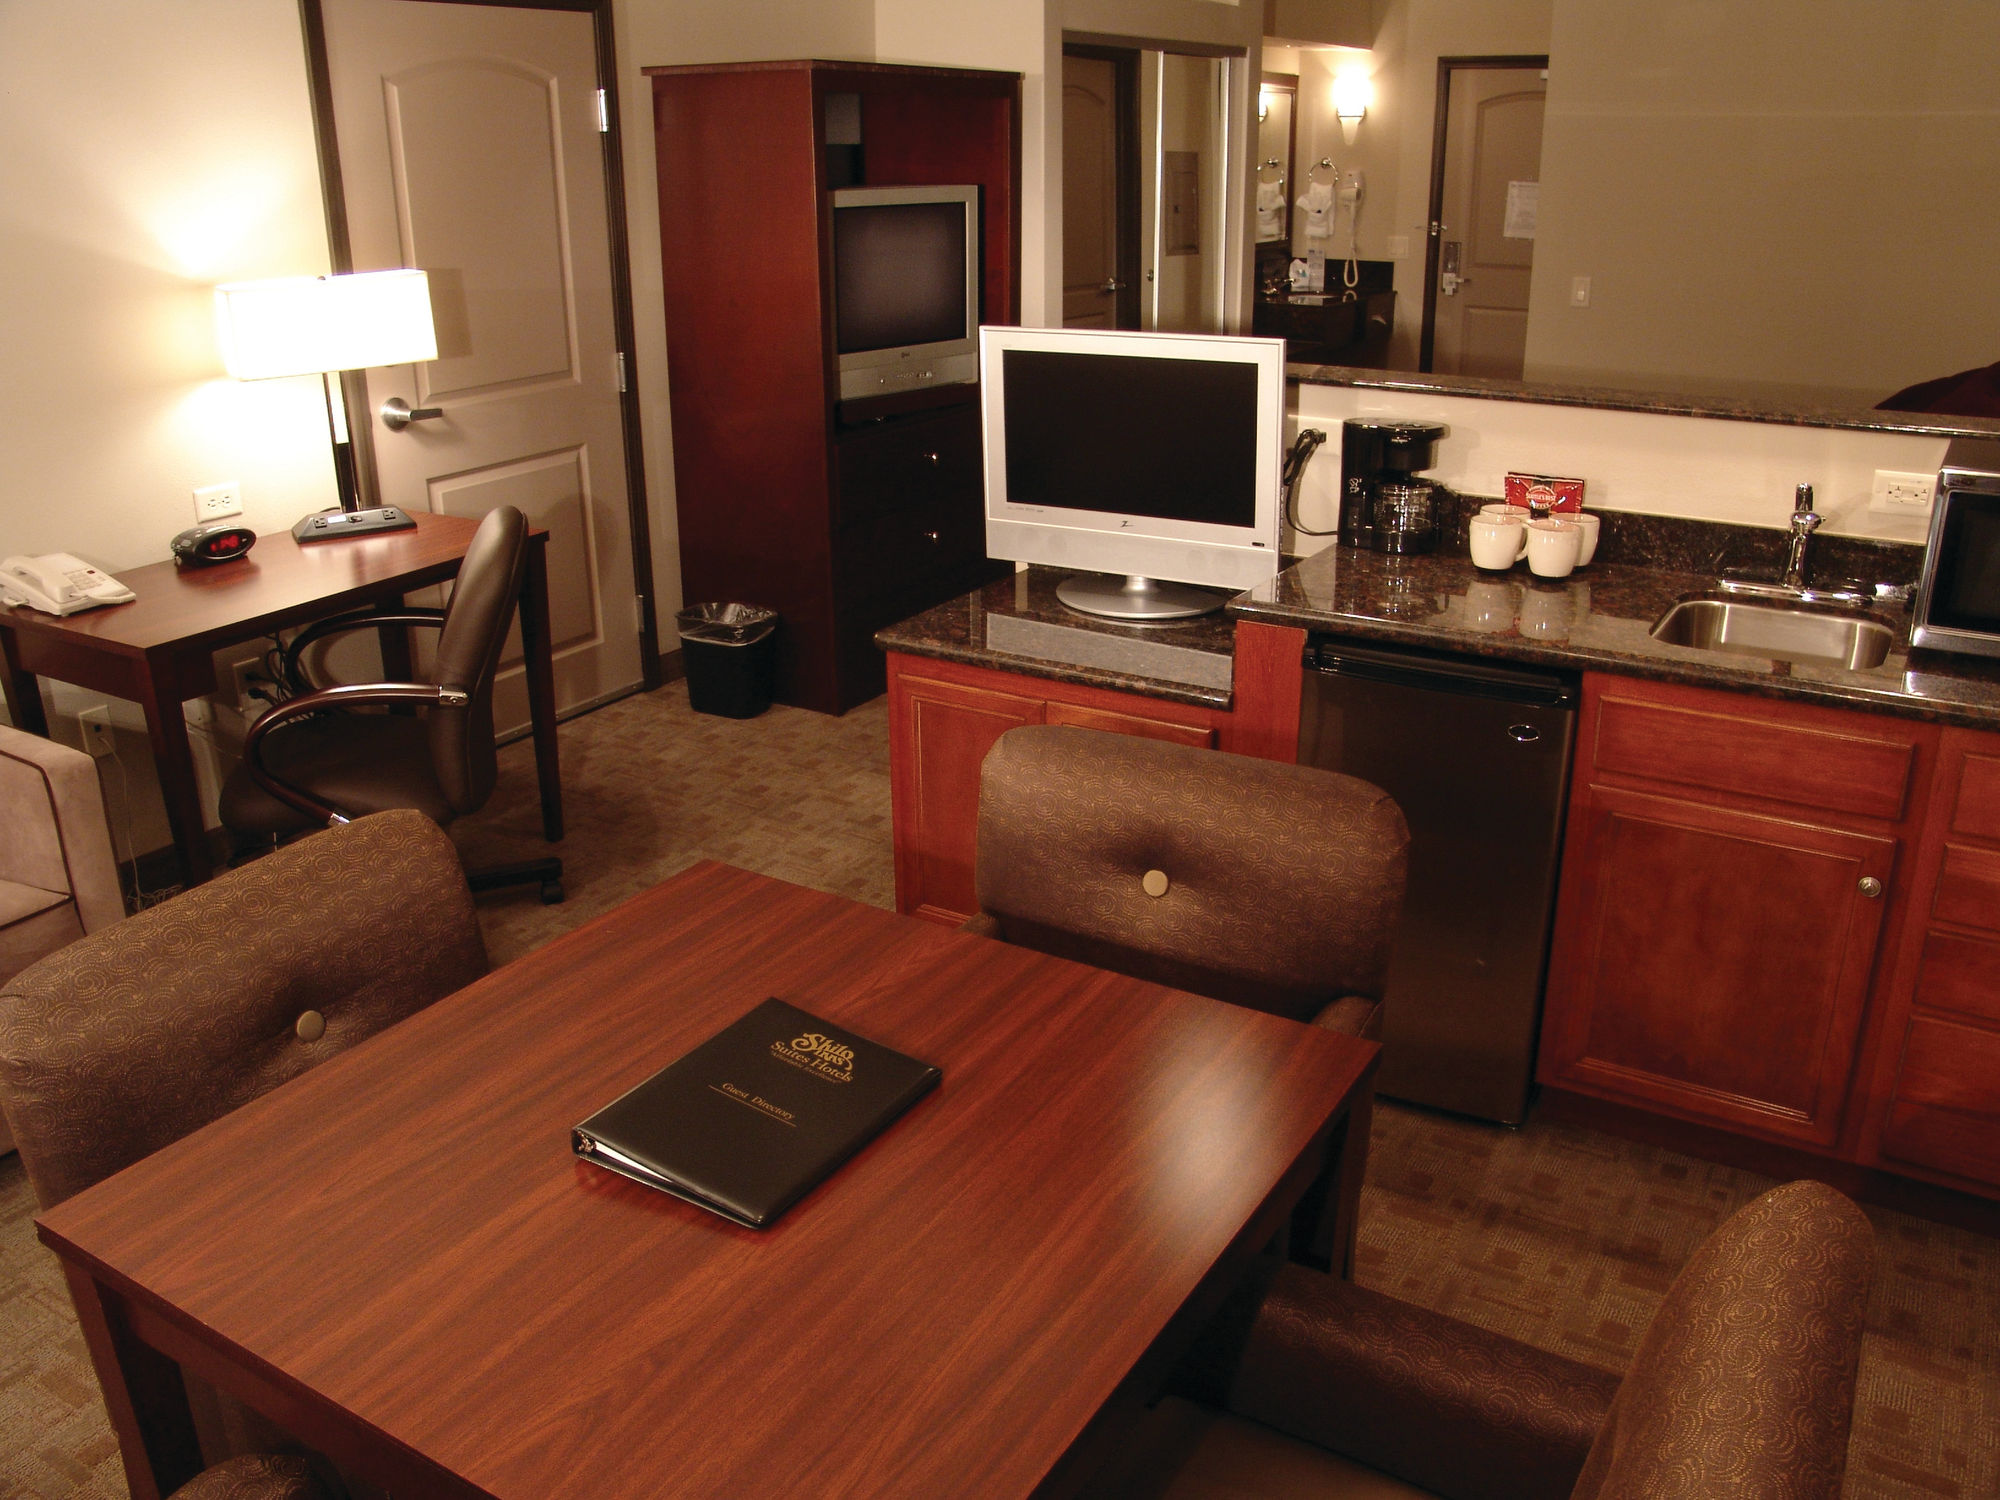 Killeen Hotel Coupons for Killeen, Texas - FreeHotelCoupons.com